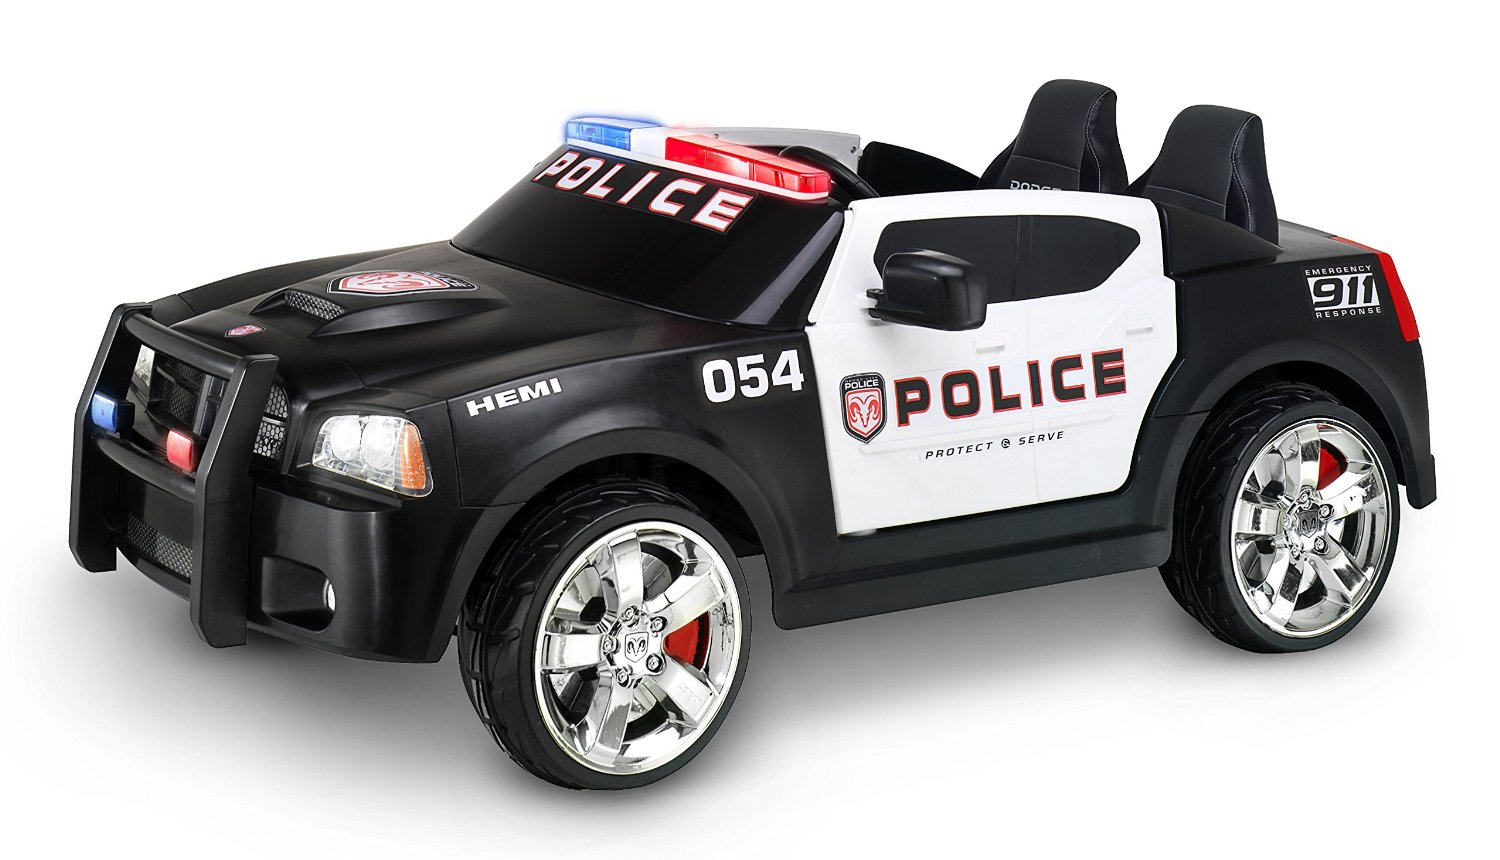 Top 10 Toddler Vehicles Of 2015 Its Baby Time Fisher Price Harley Davidson Ride On Tough Trike Charger Police Car